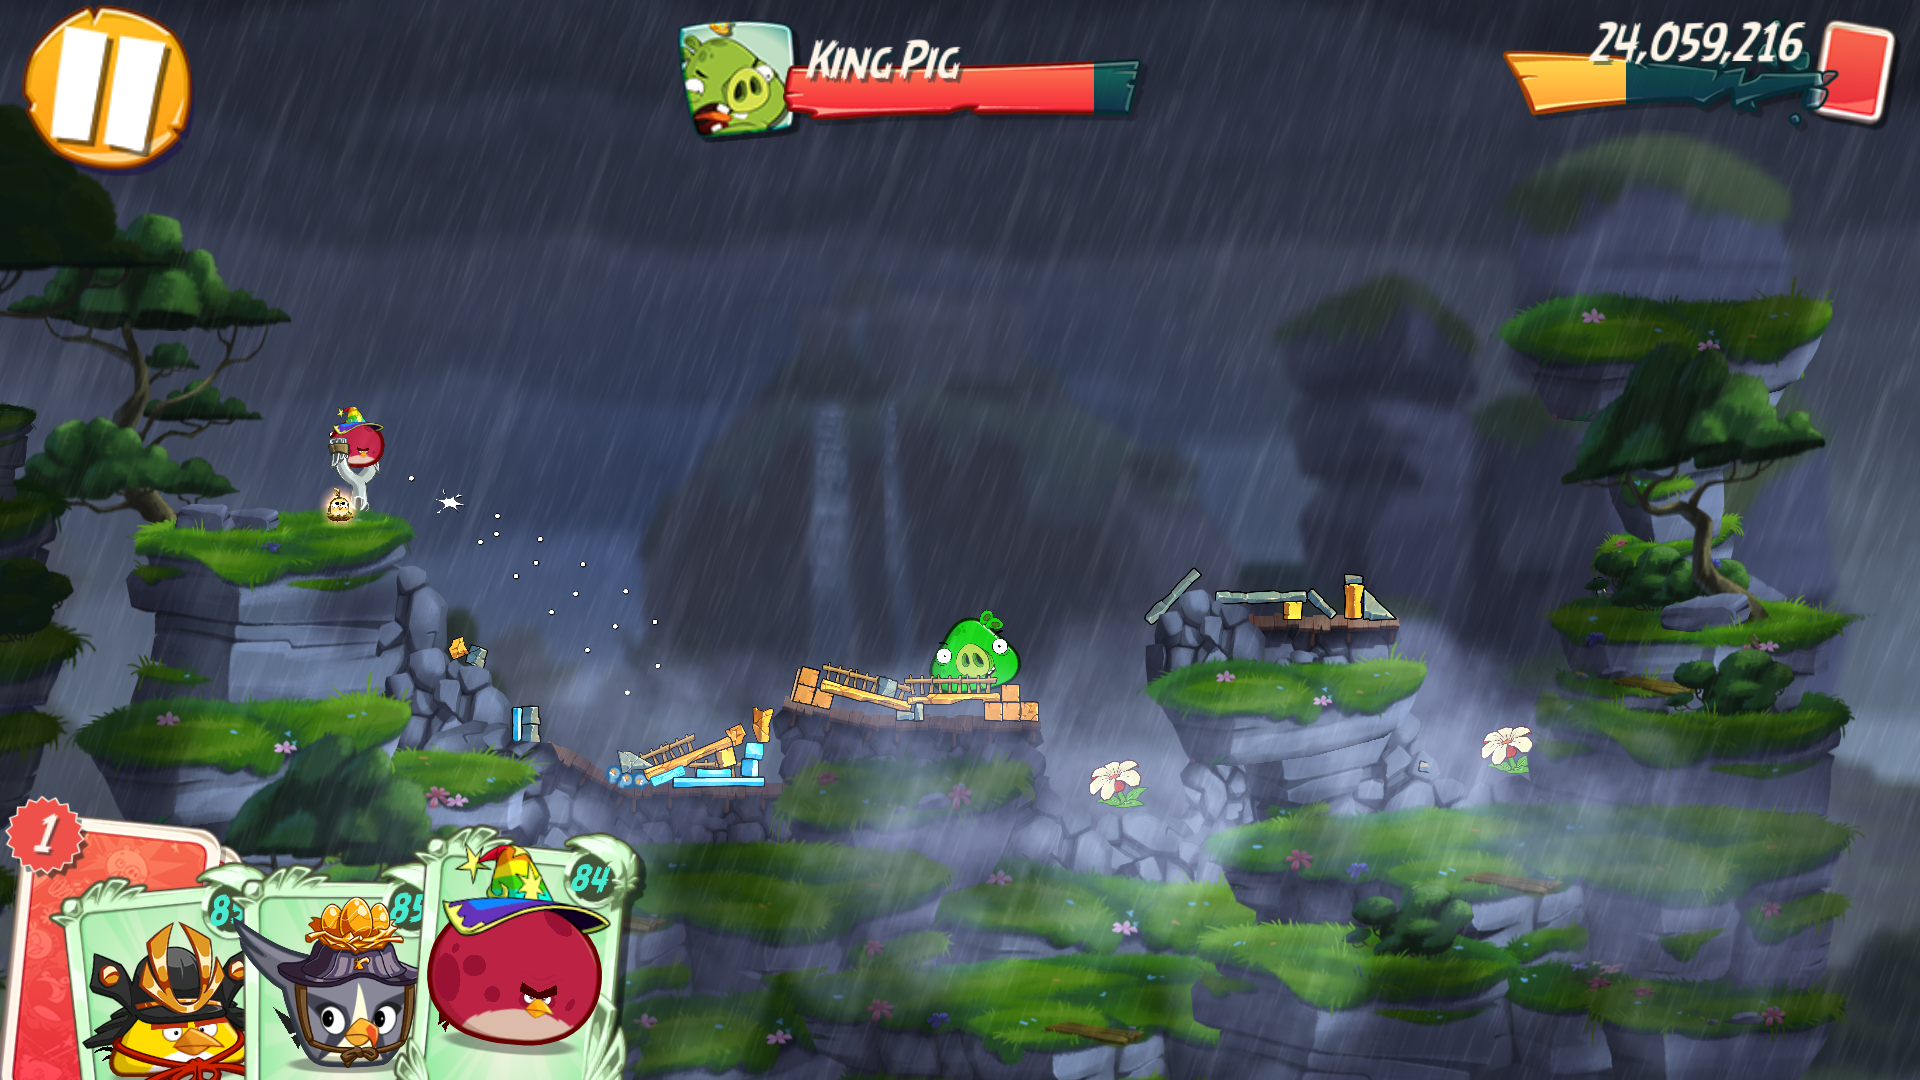 https://www.angrybirdsnest.com/wp-content/uploads/hm_bbpui/217675/snyuqsws8gglbgpi5wo8wia30mf7hx70.png